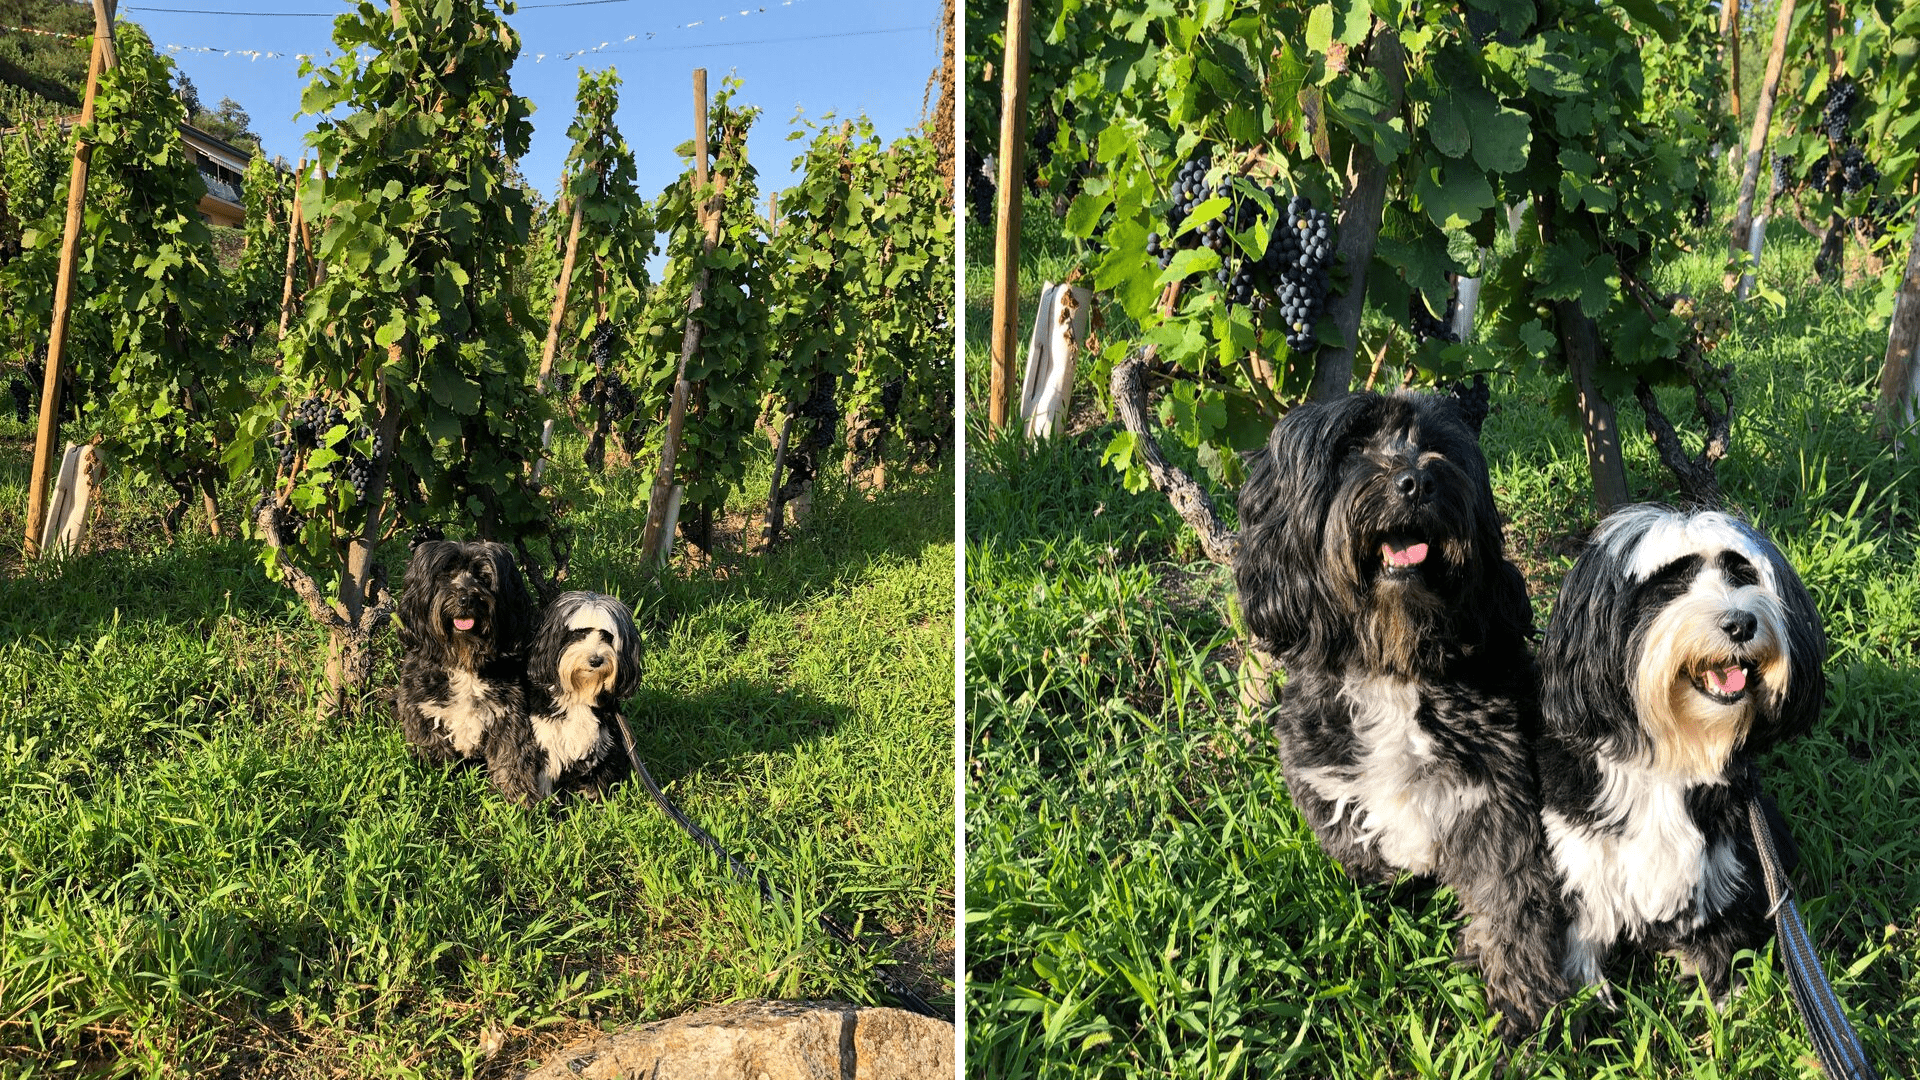 Dogs in the vineyard in France